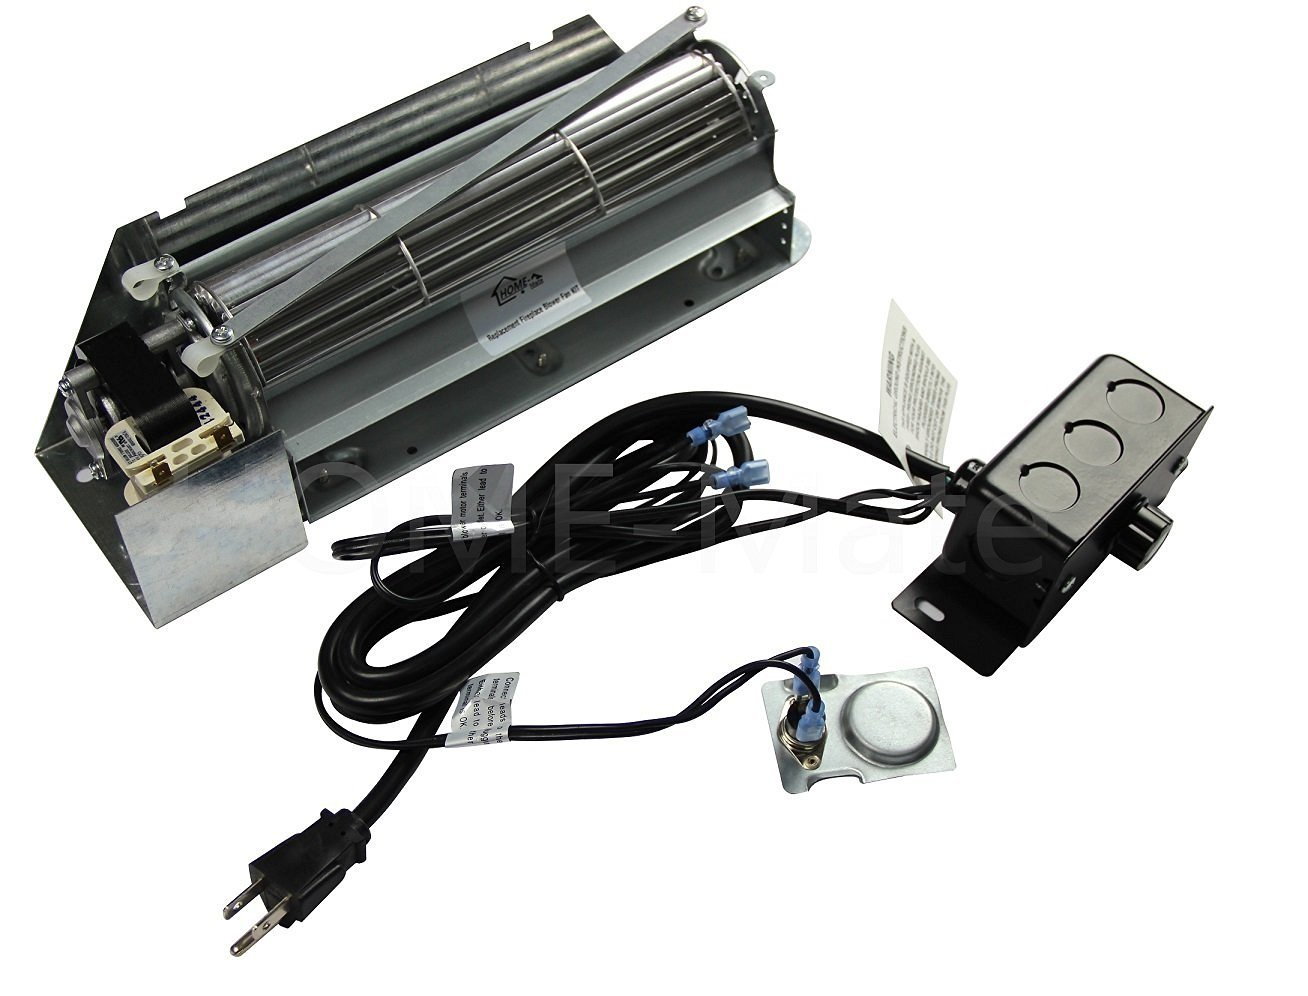 Fbk 250 Gas Fireplace Blower Fan Kit For Lennox Superior Rotom Hb Rb250 Ebay